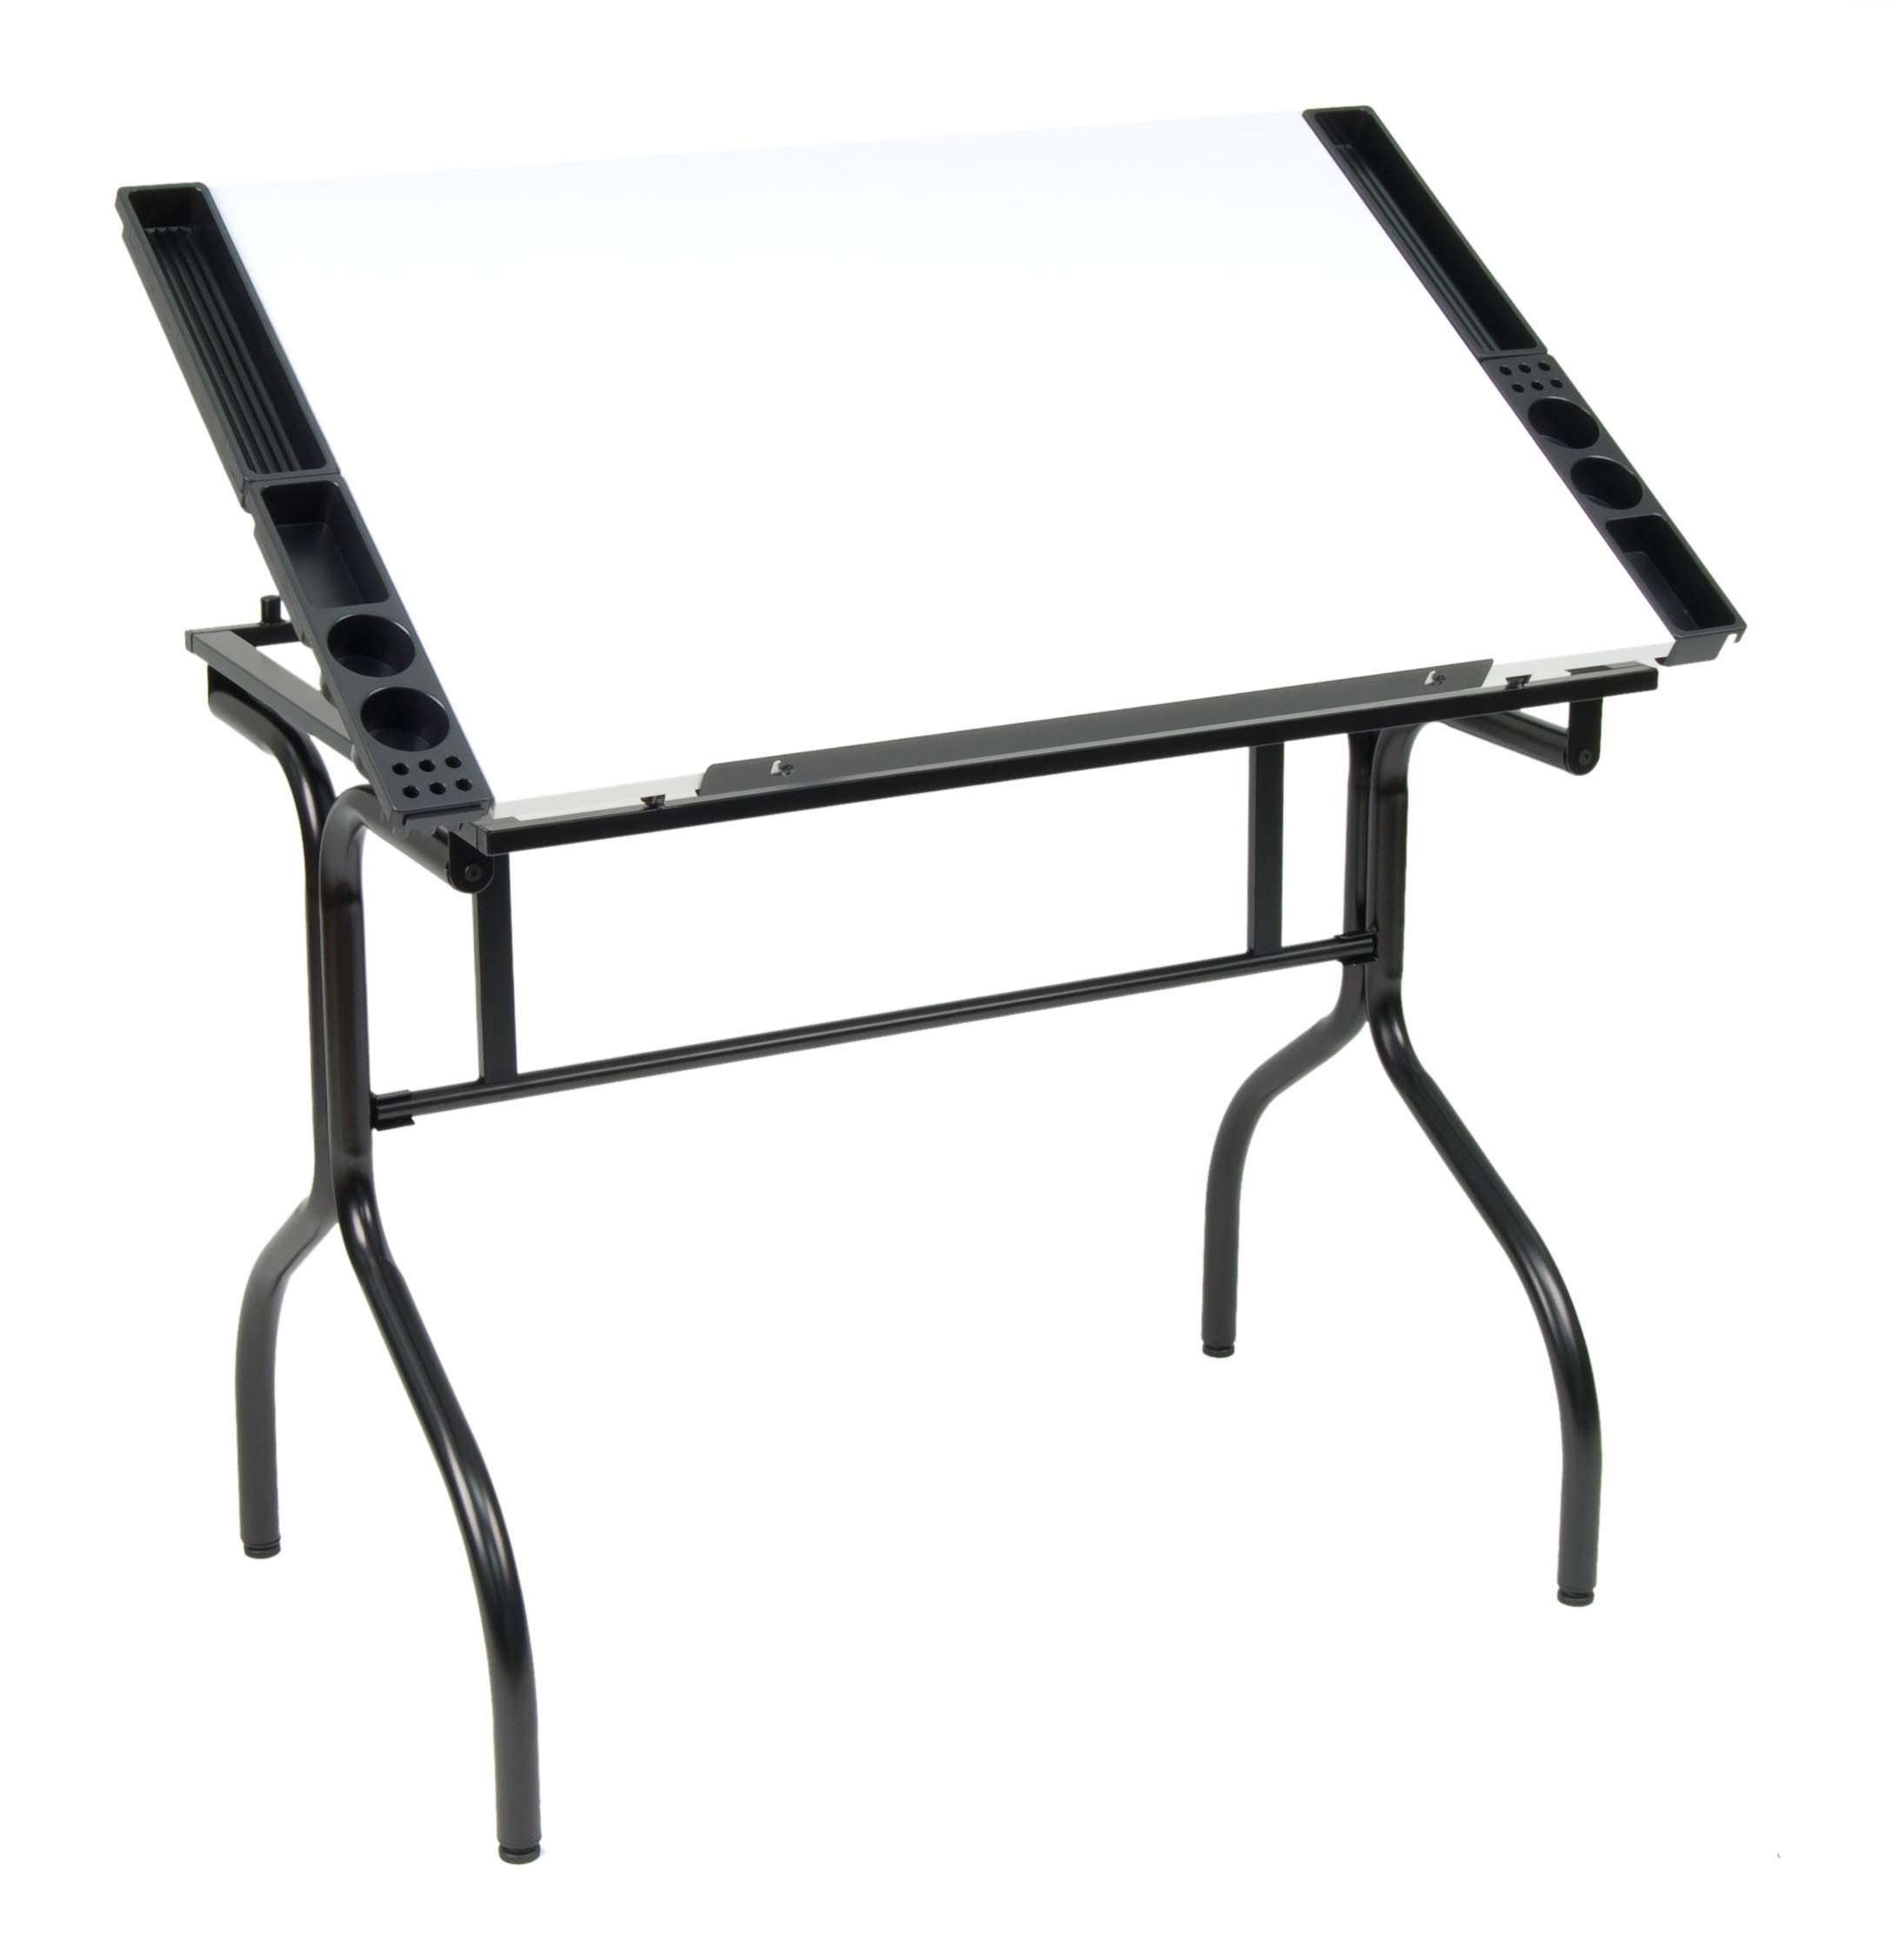 Studio Designs Folding Modern Top Adjustable Drafting Table Craft Table Drawing Desk Hobby Table Writing Desk Studio Desk, 35.25'' W x 23.75'' D, Black / White by SD STUDIO DESIGNS